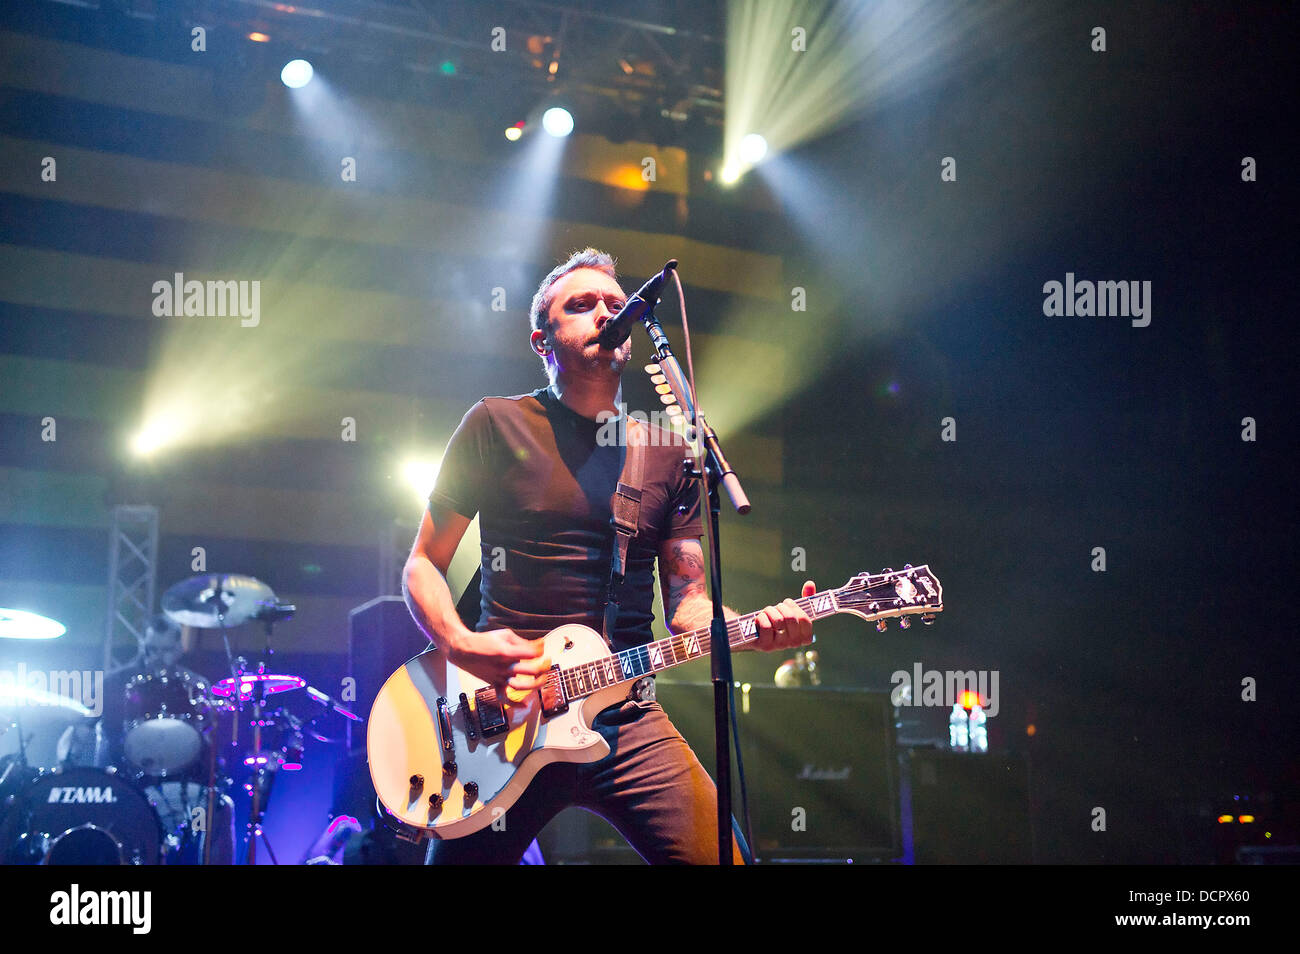 Tim McIlrath of Rise Against performing live at Brixton Academy London, England 09.11.11 - Stock Image